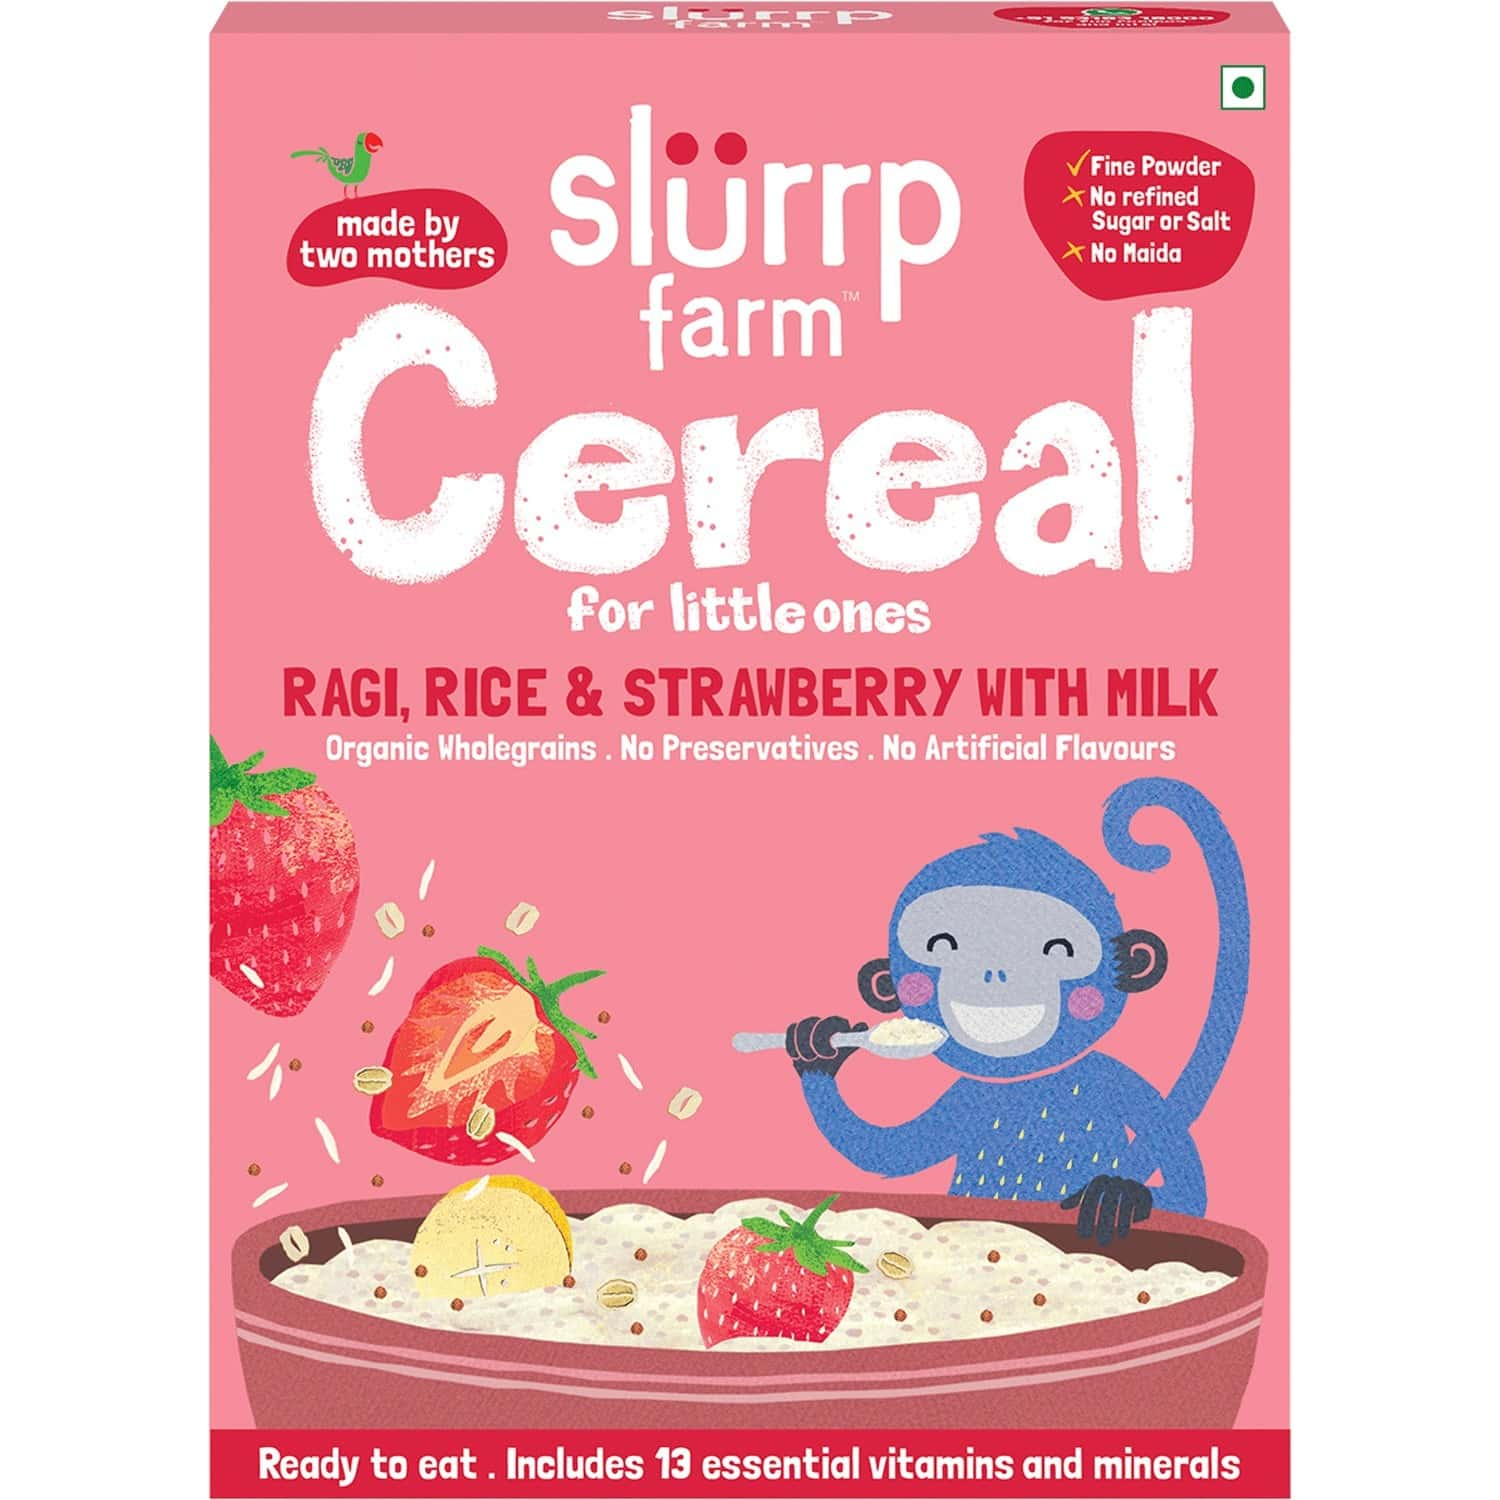 Slurrp Farm Cereal For Little Ones Ragi, Rice & Strawberry With Milk - 200g